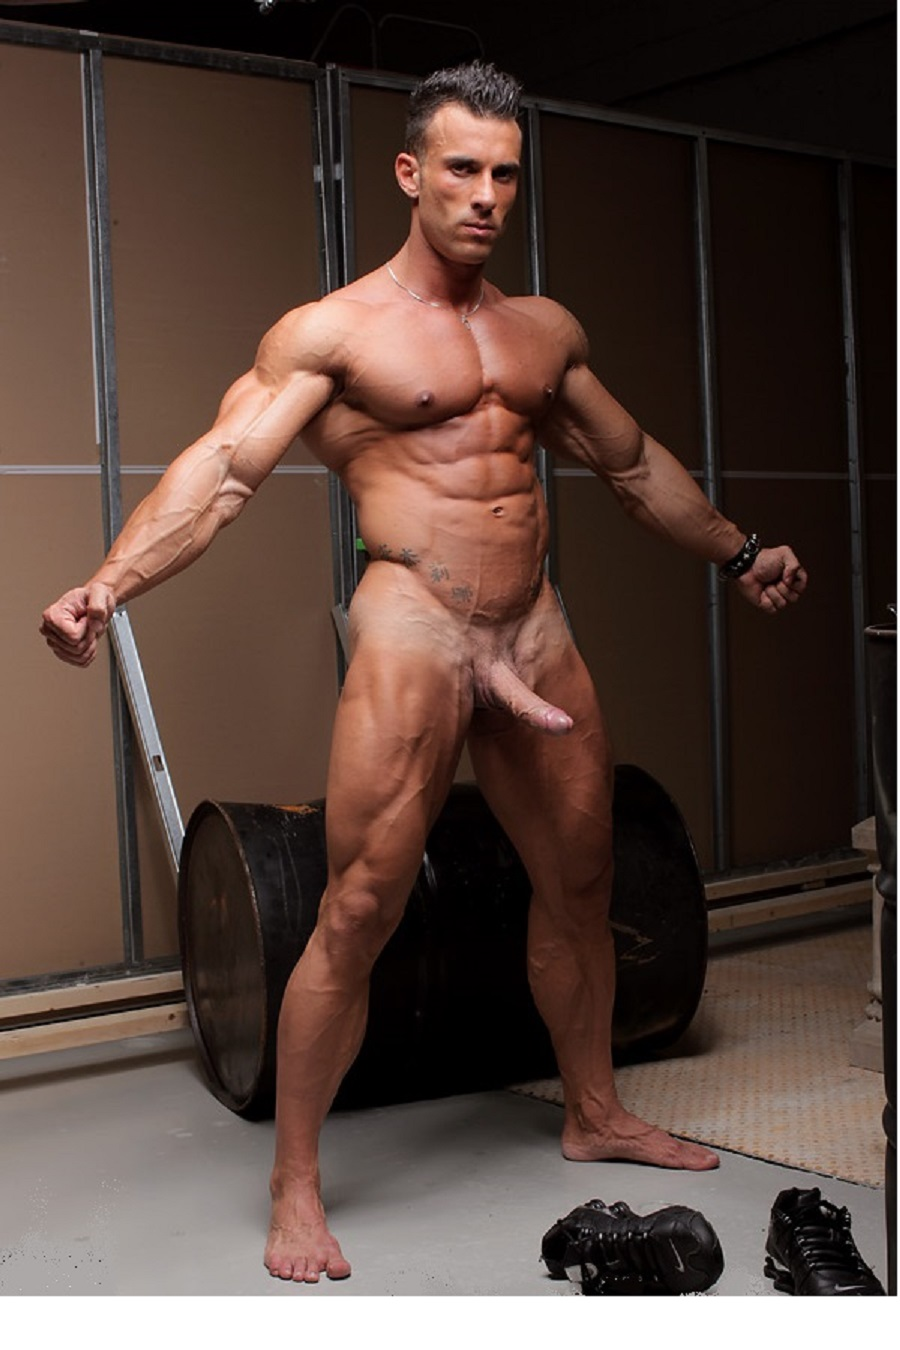 woman-sex-bodybuilder-christian-power-naked